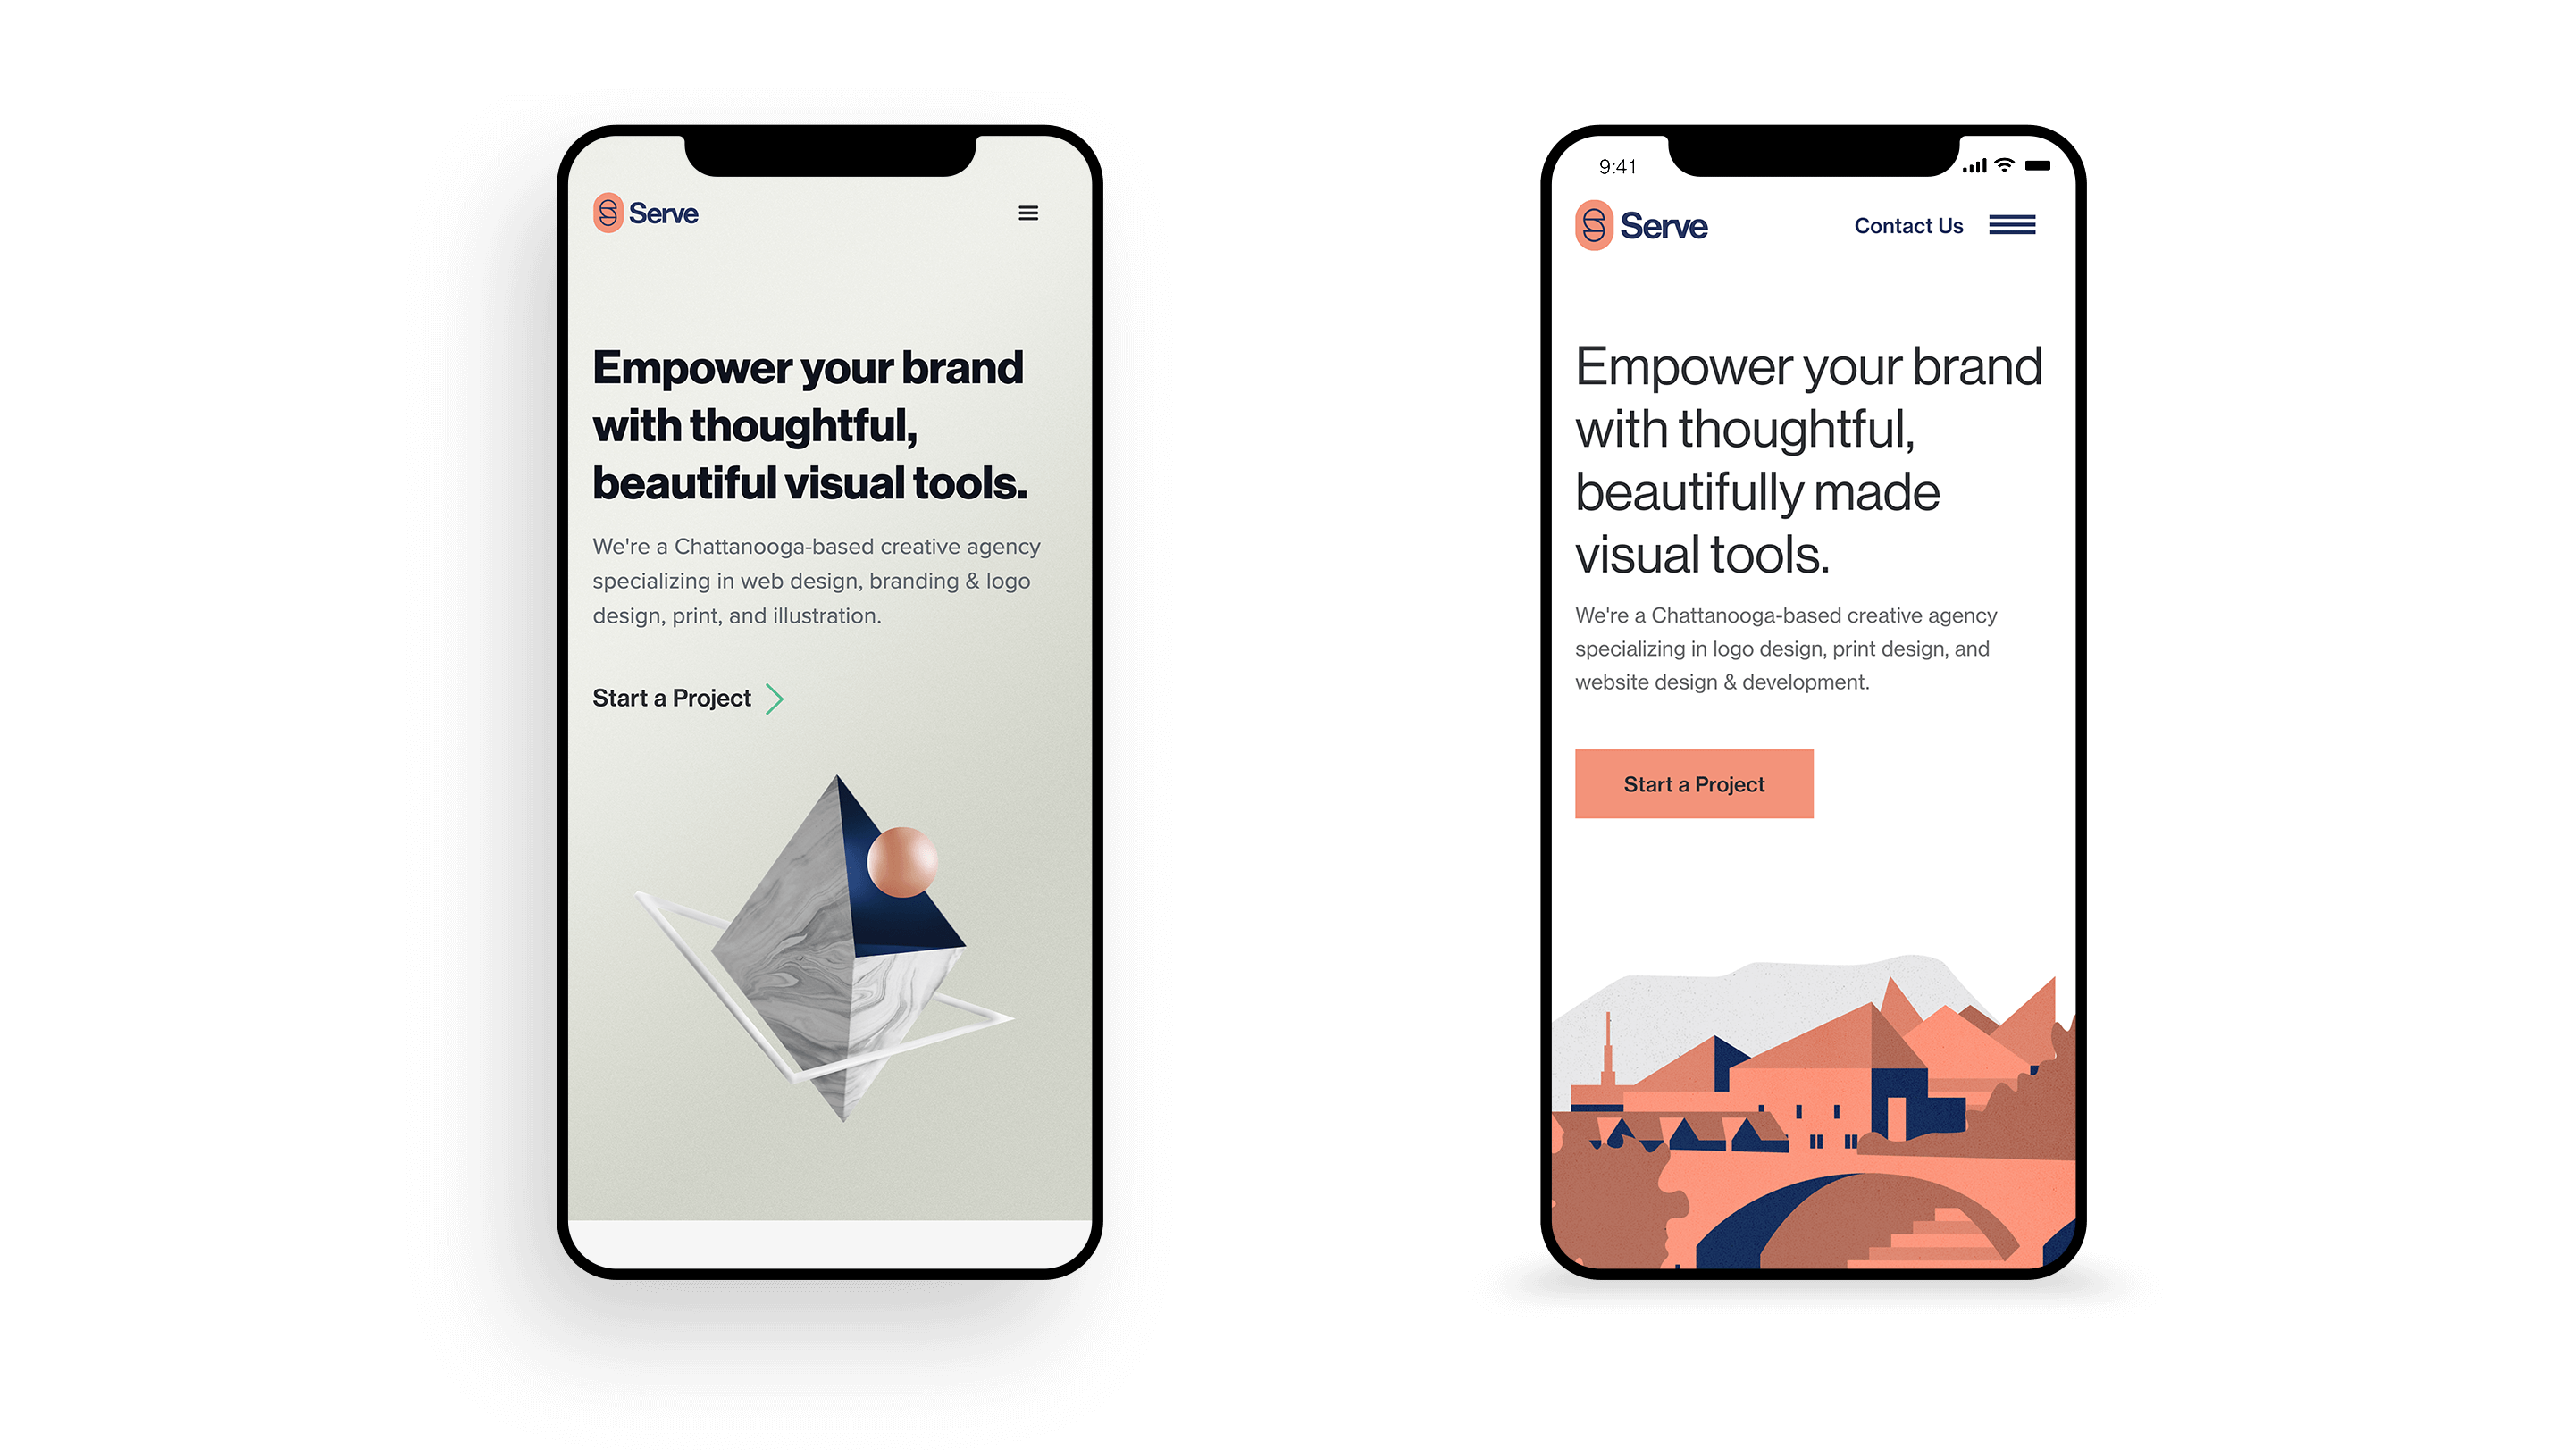 Two phone mockups with the old and new versions of the Serve website.